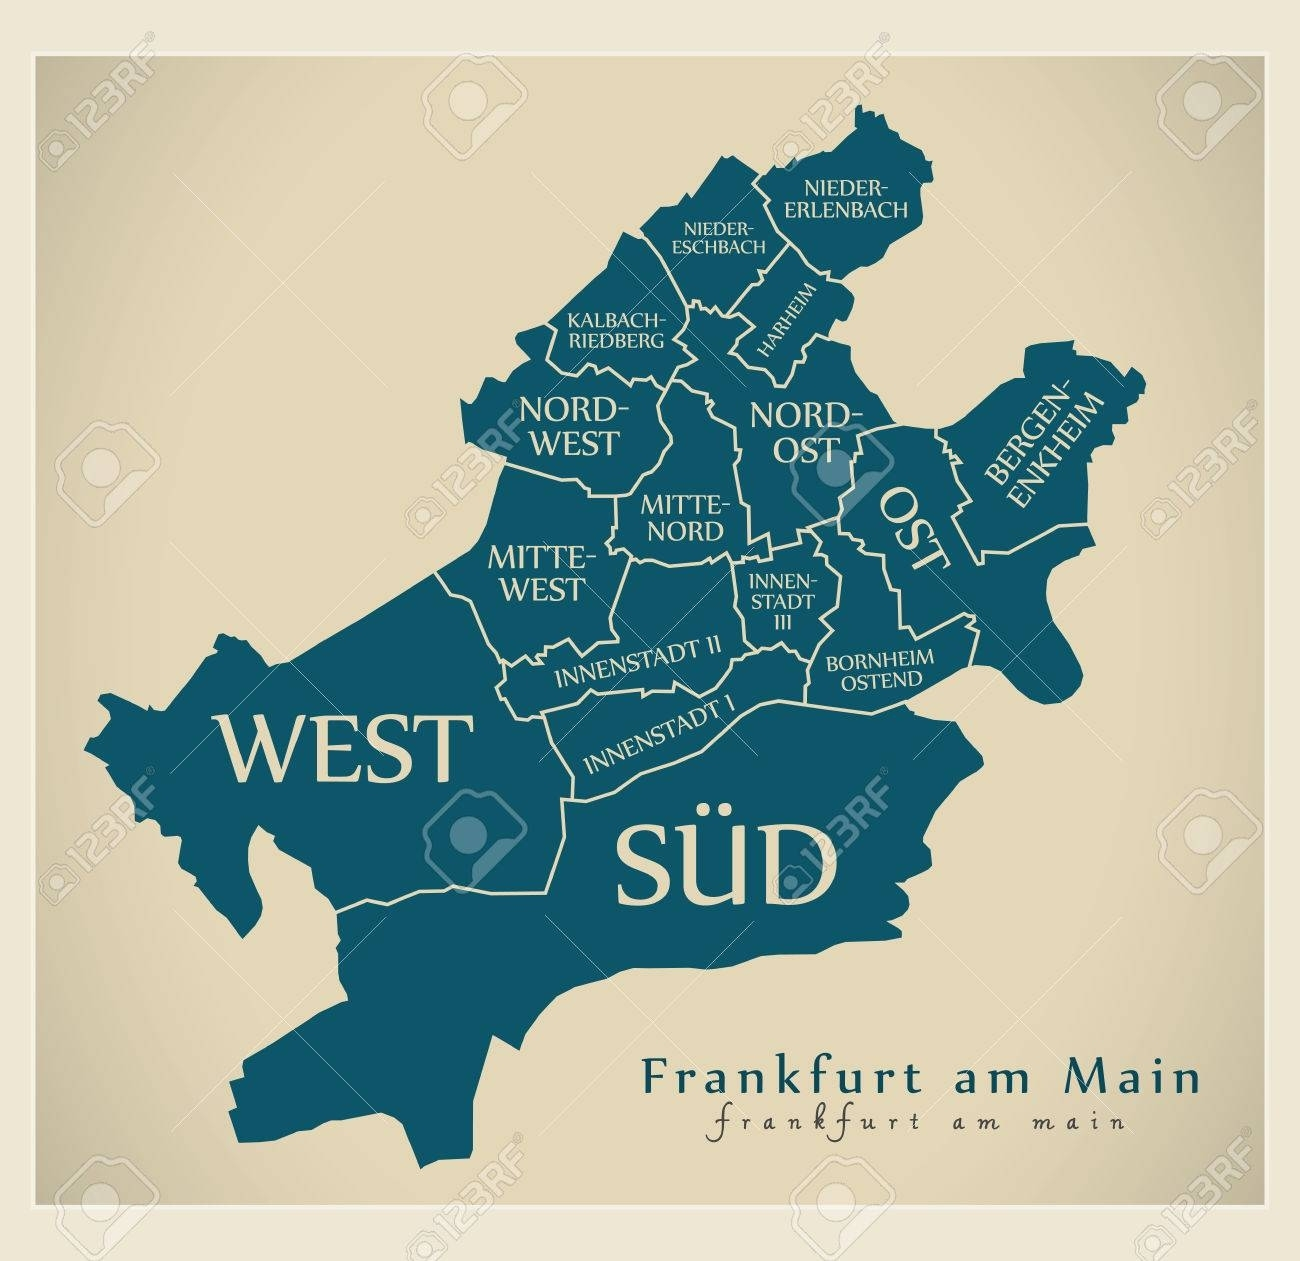 Modern City Map - Frankfurt Am Main City Of Germany With Boroughs.. intended for Frankfurt Am Main Germany Map